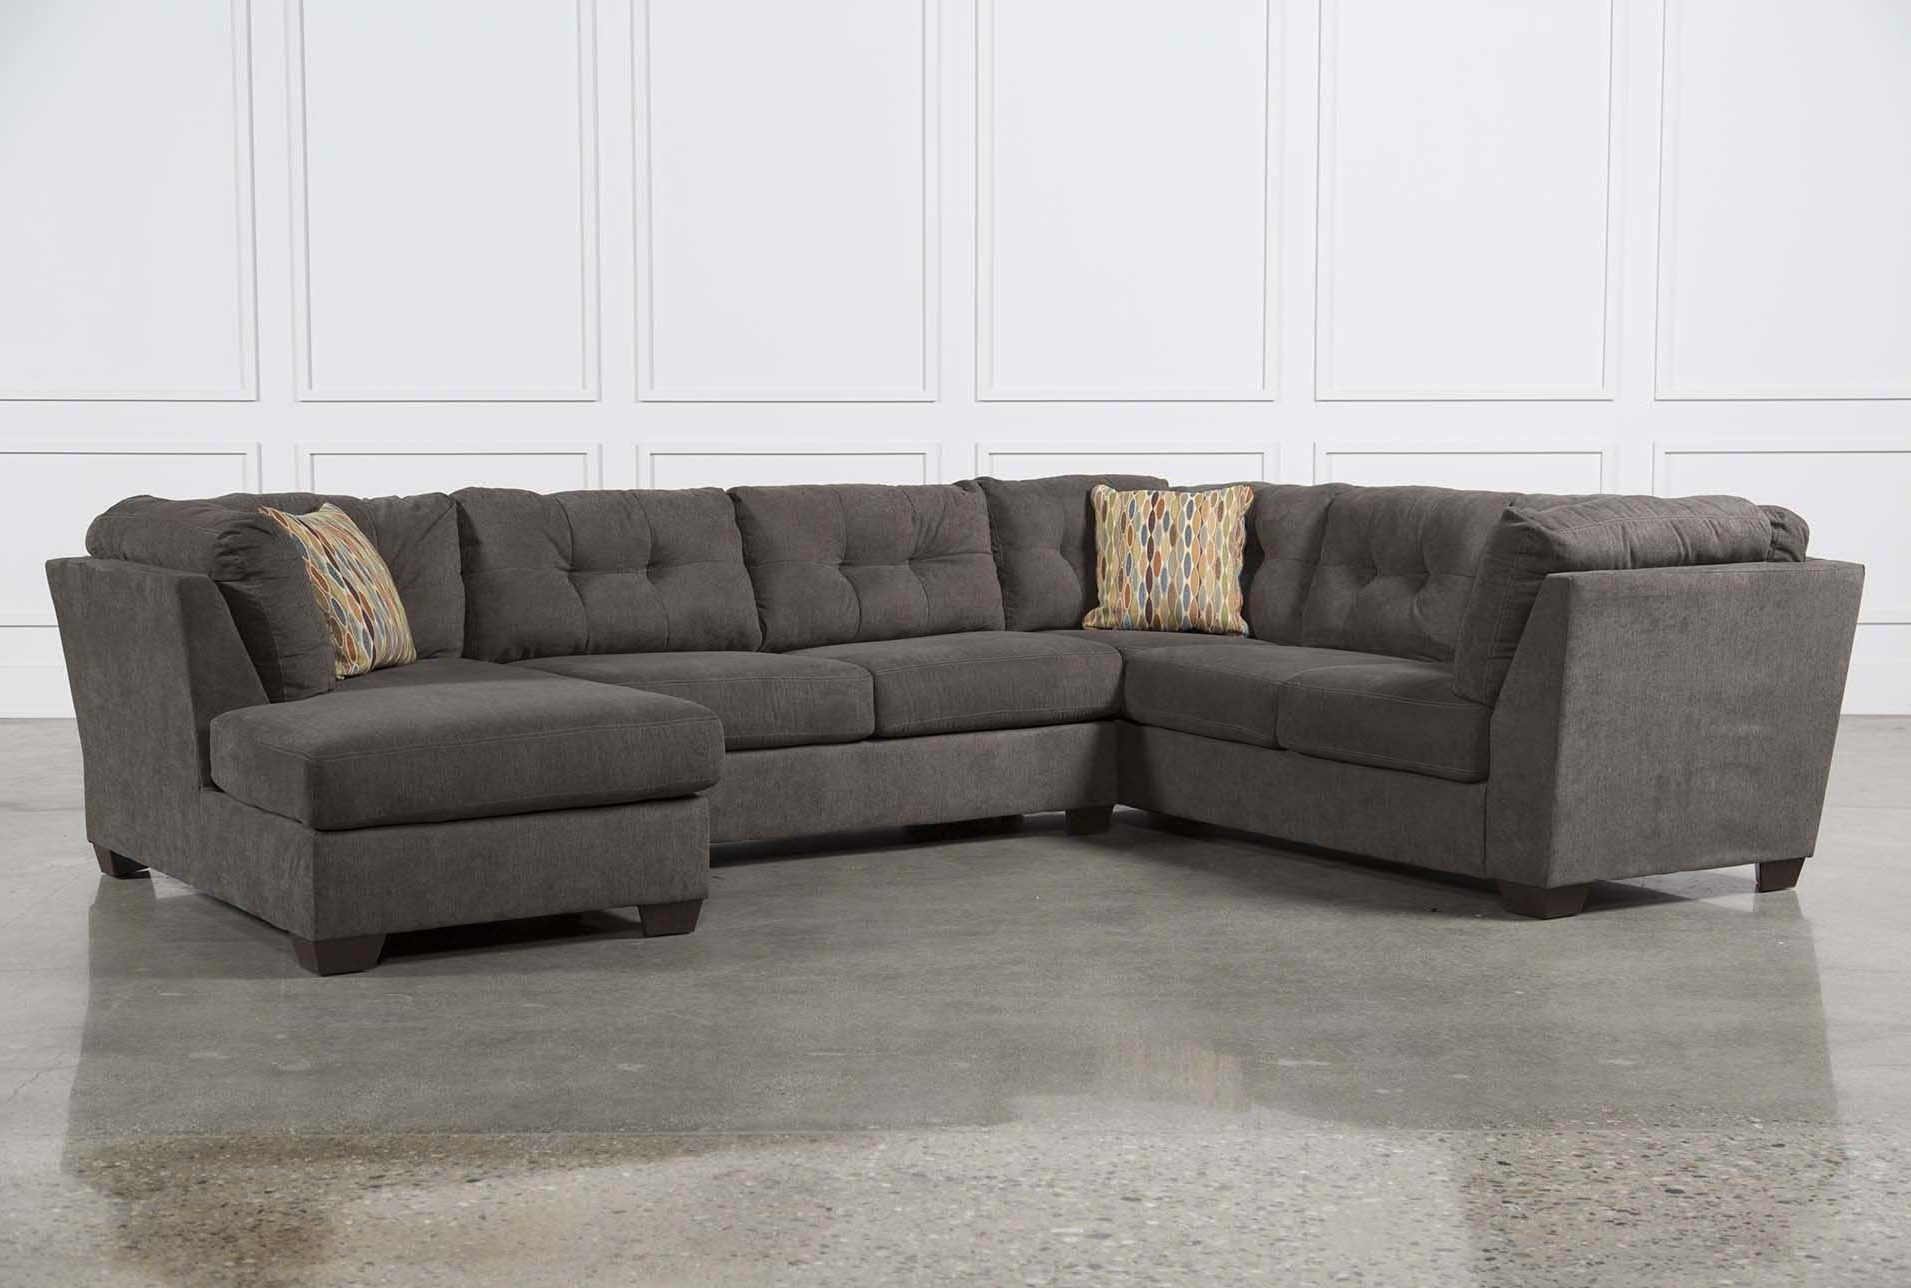 Latest 19 Grey 3 Piece Sectional Sofa – Buildsimplehome In Haven 3 Piece Sectionals (View 18 of 20)